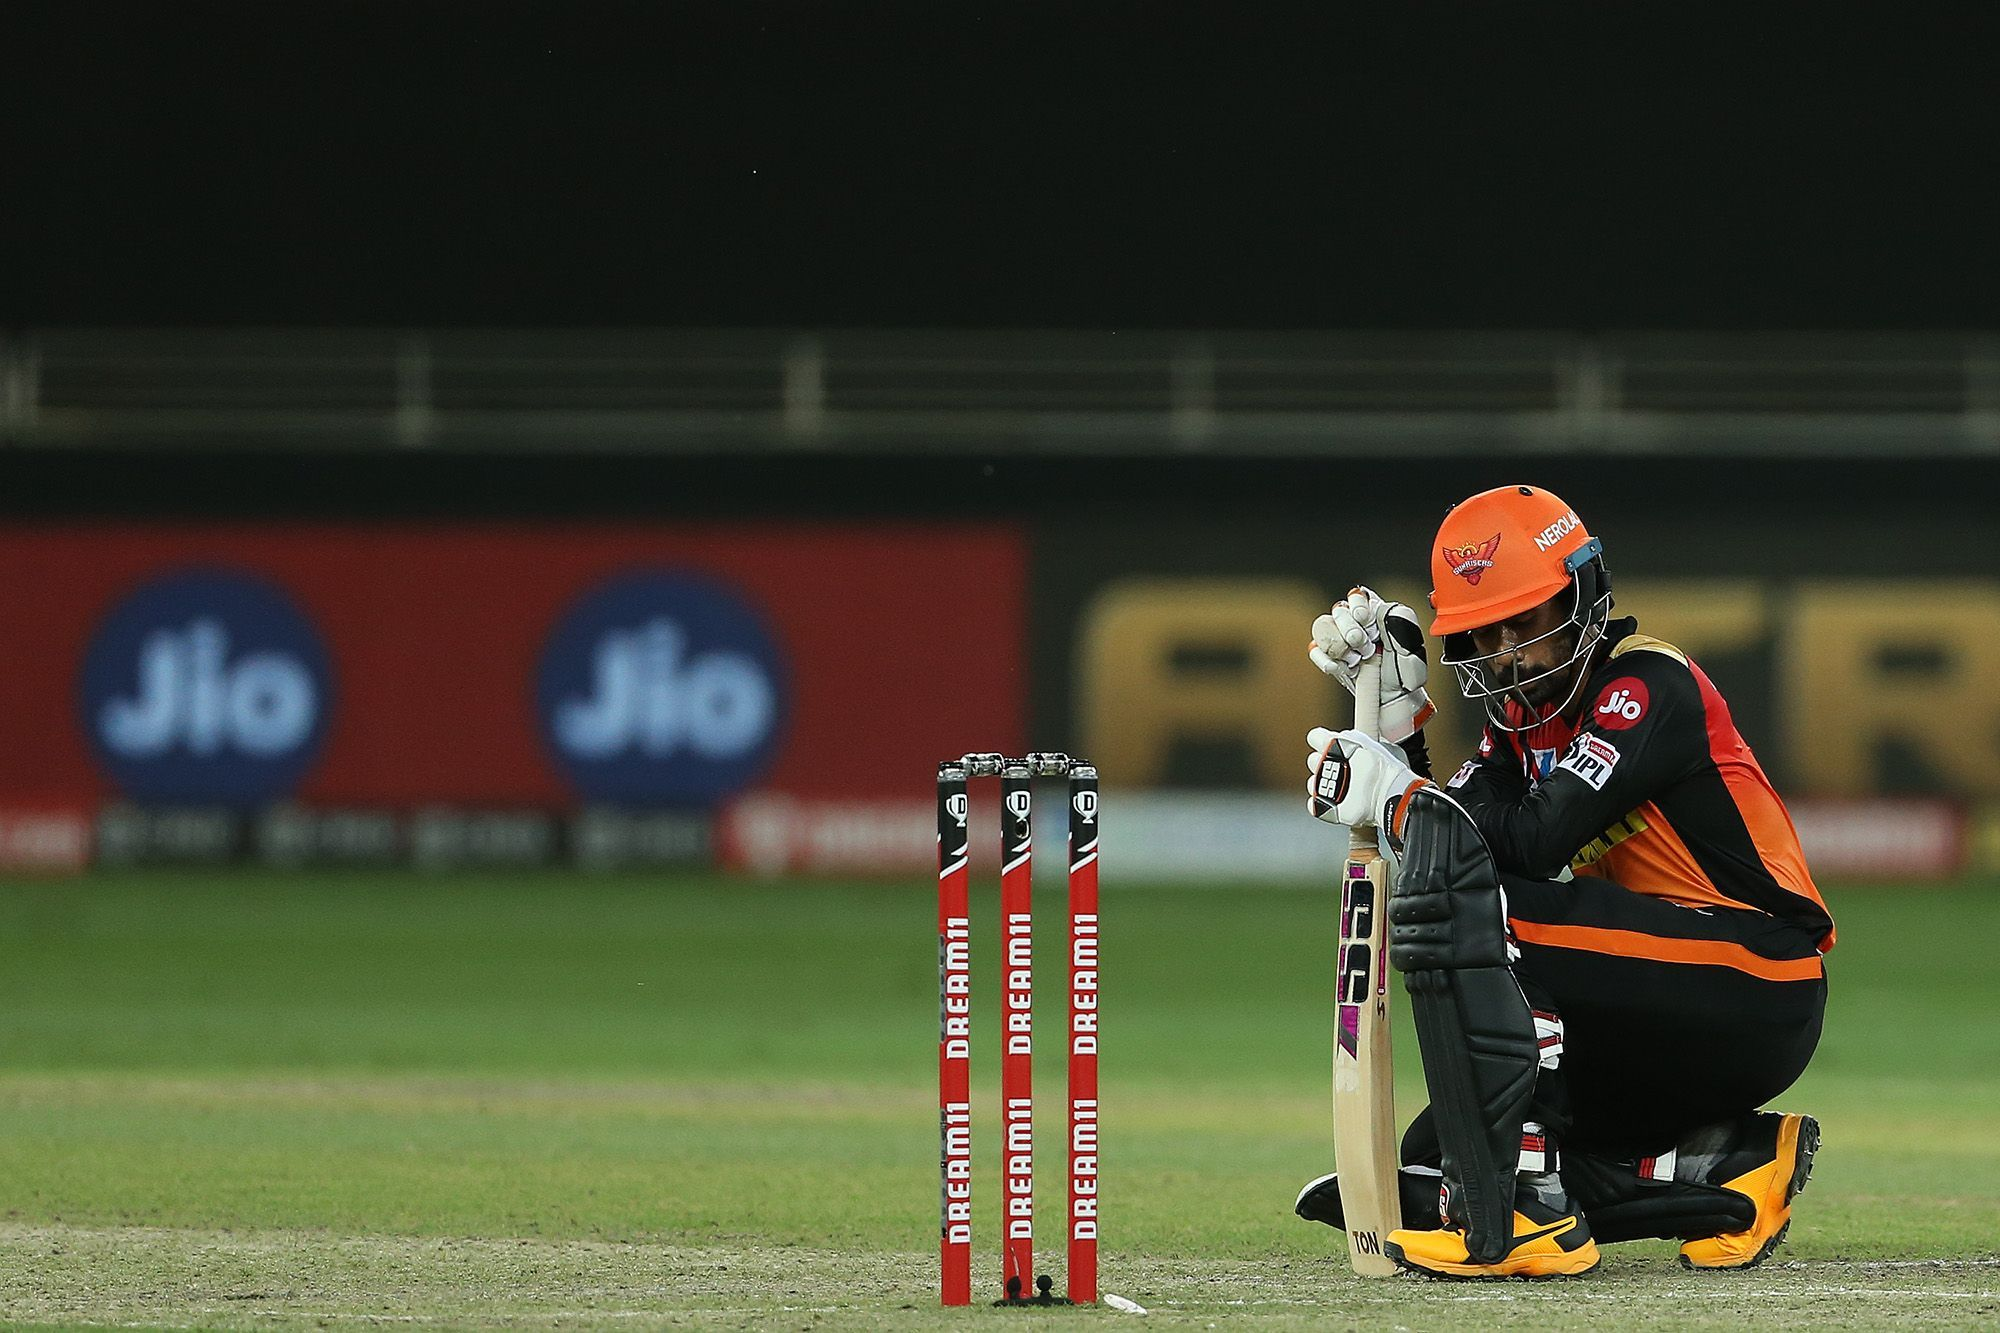 Saha looked visibly discomforted during the end of his knock | BCCI/IPL